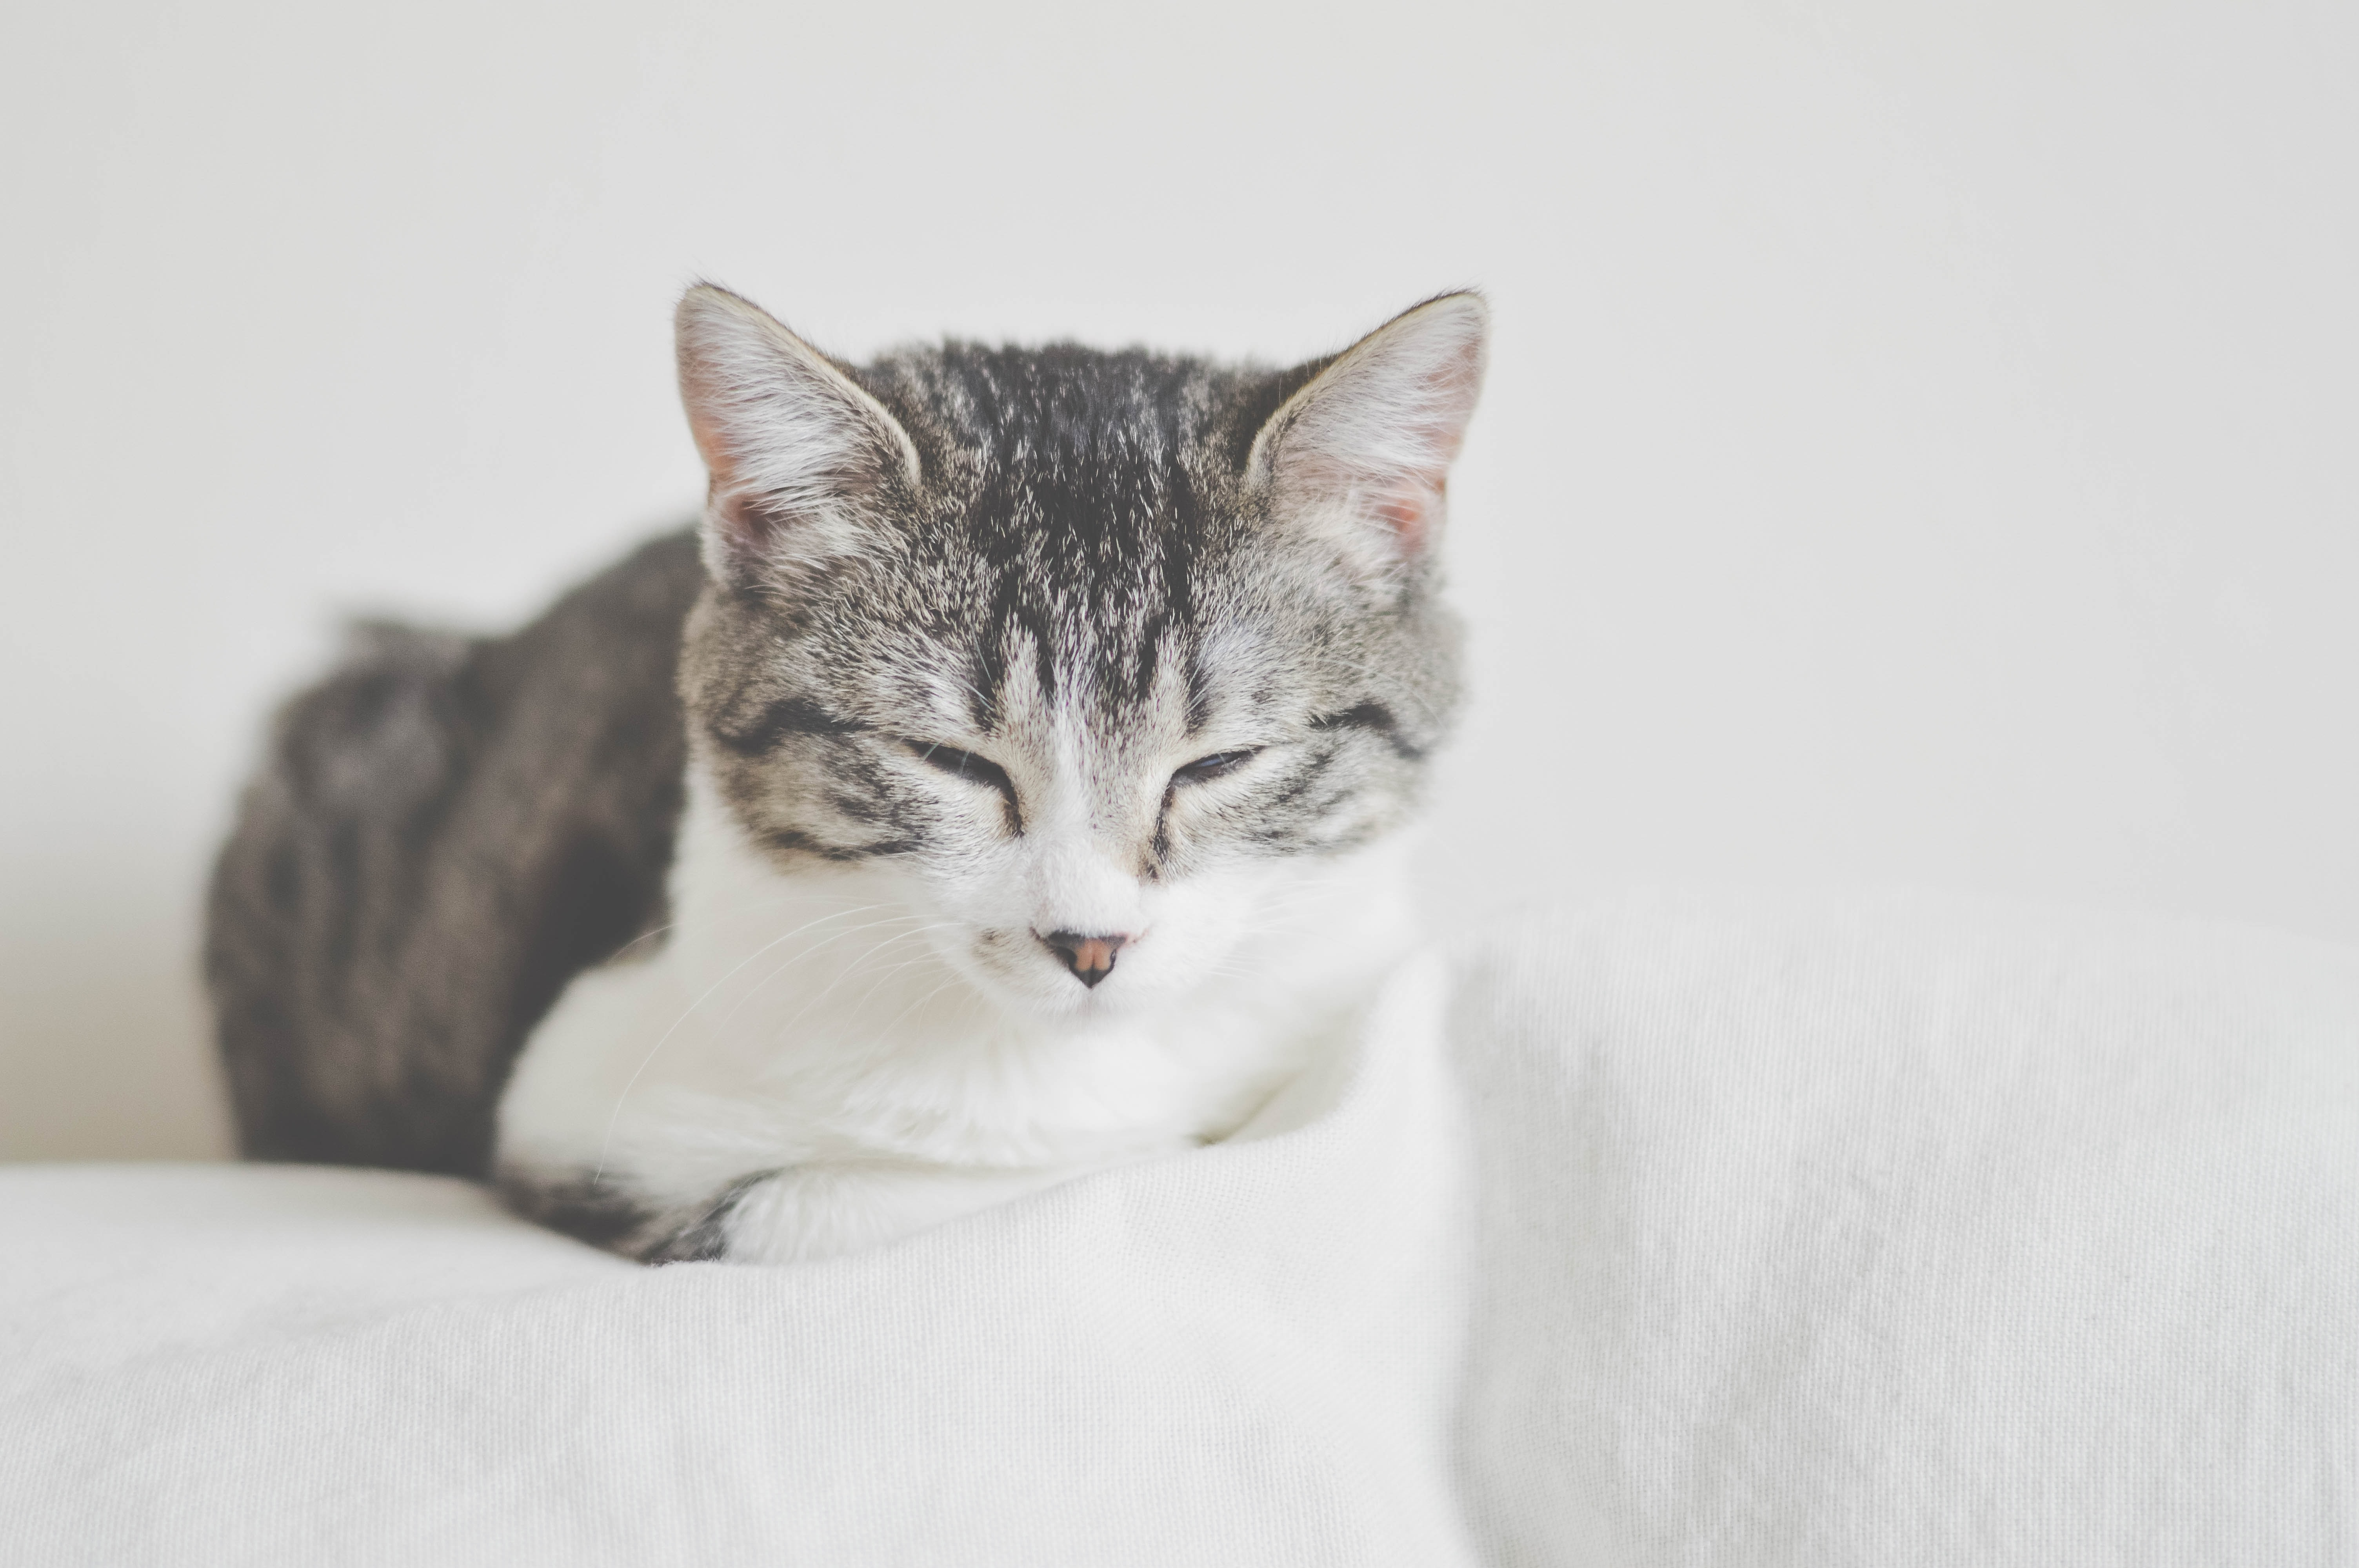 gray and white cat on white textile